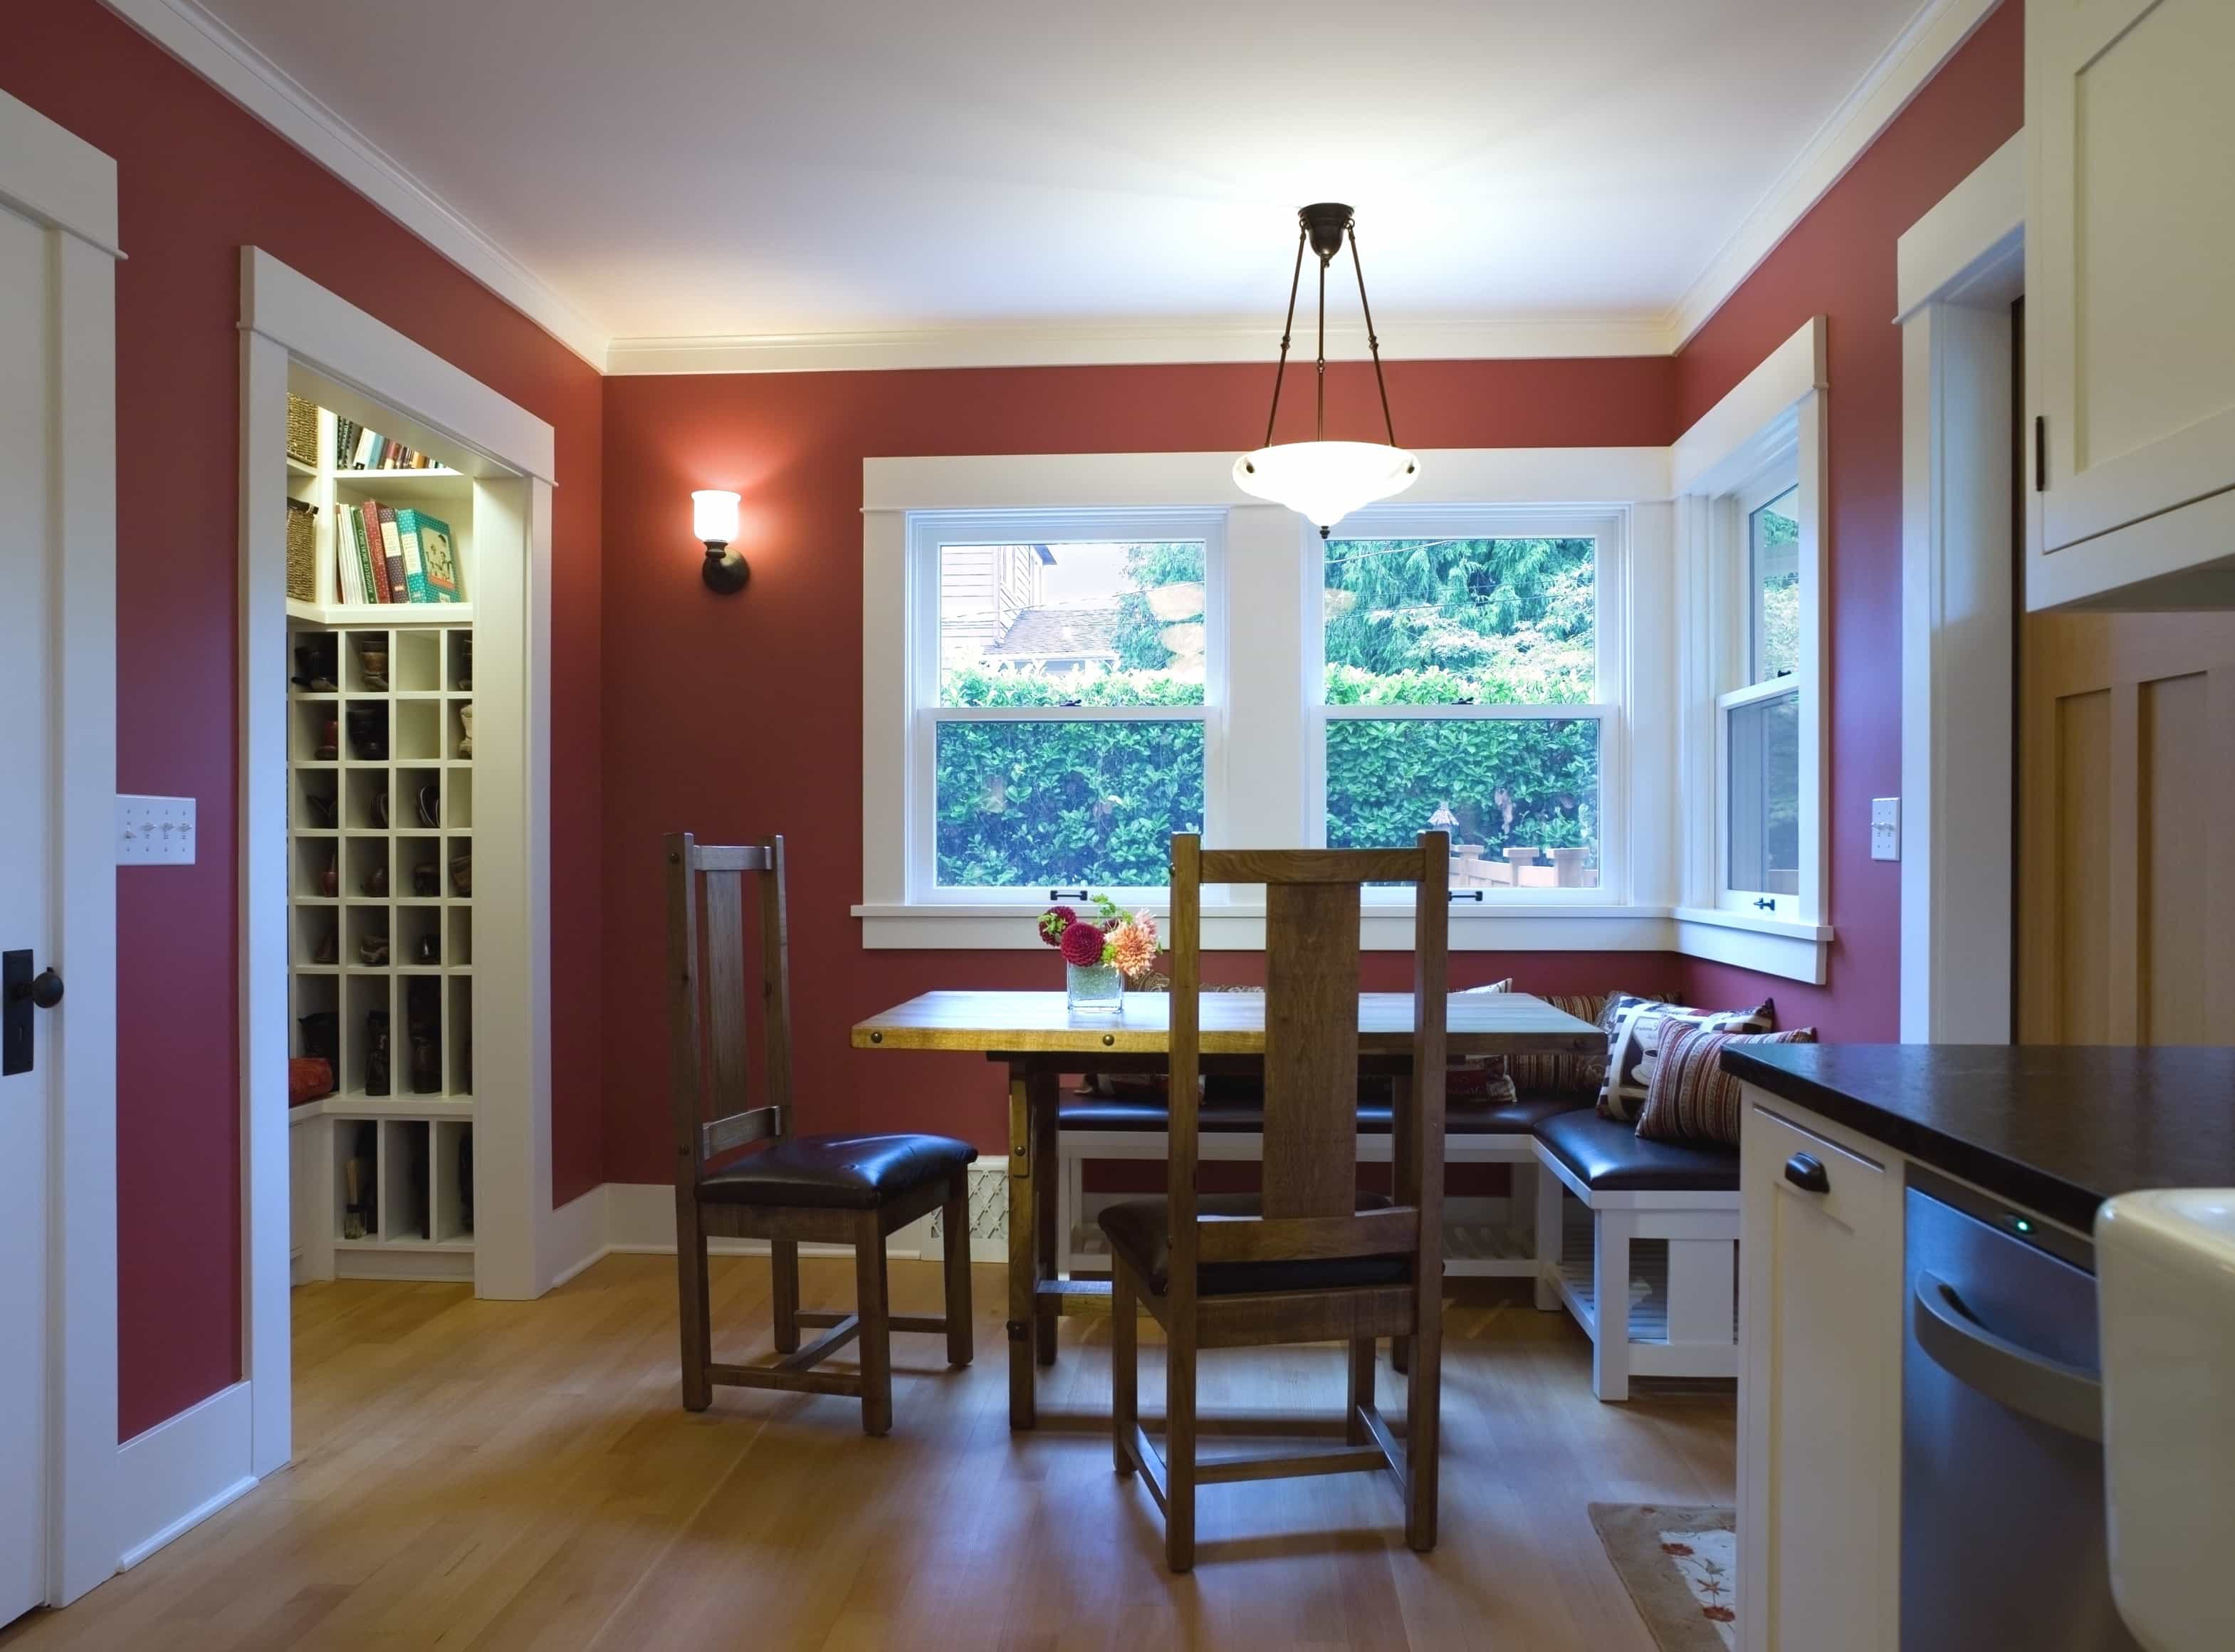 Featured Image of Craftsman Style Breakfast Area Opens Up To The Kitchen